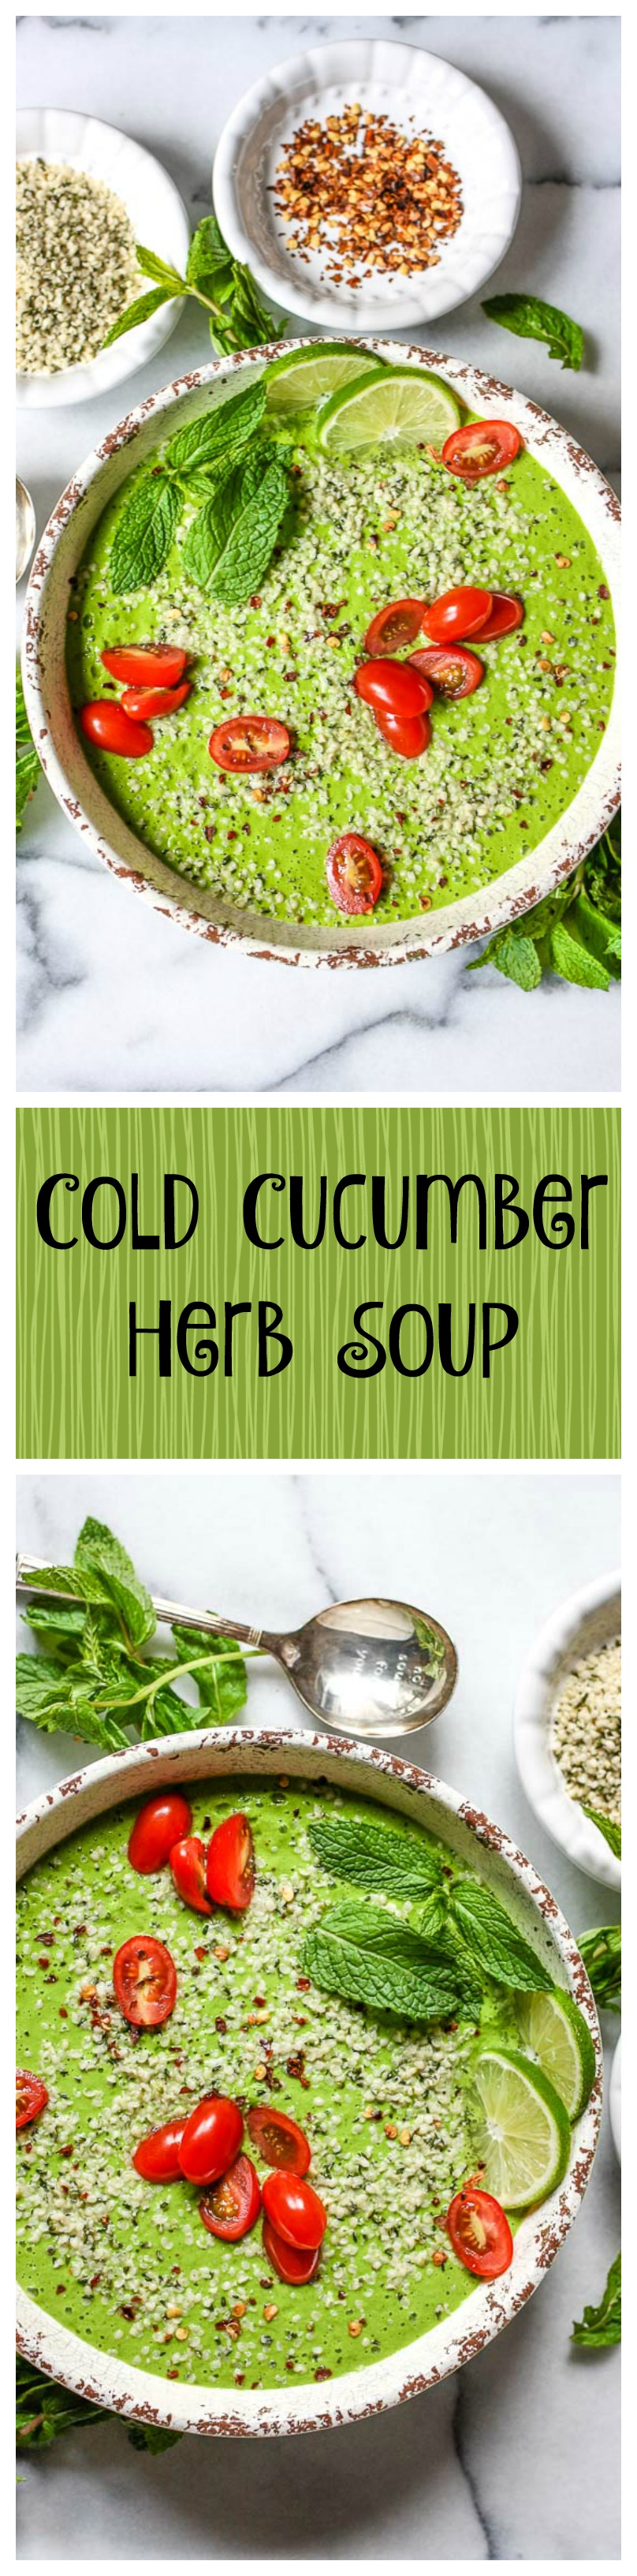 cold cucumber herb soup